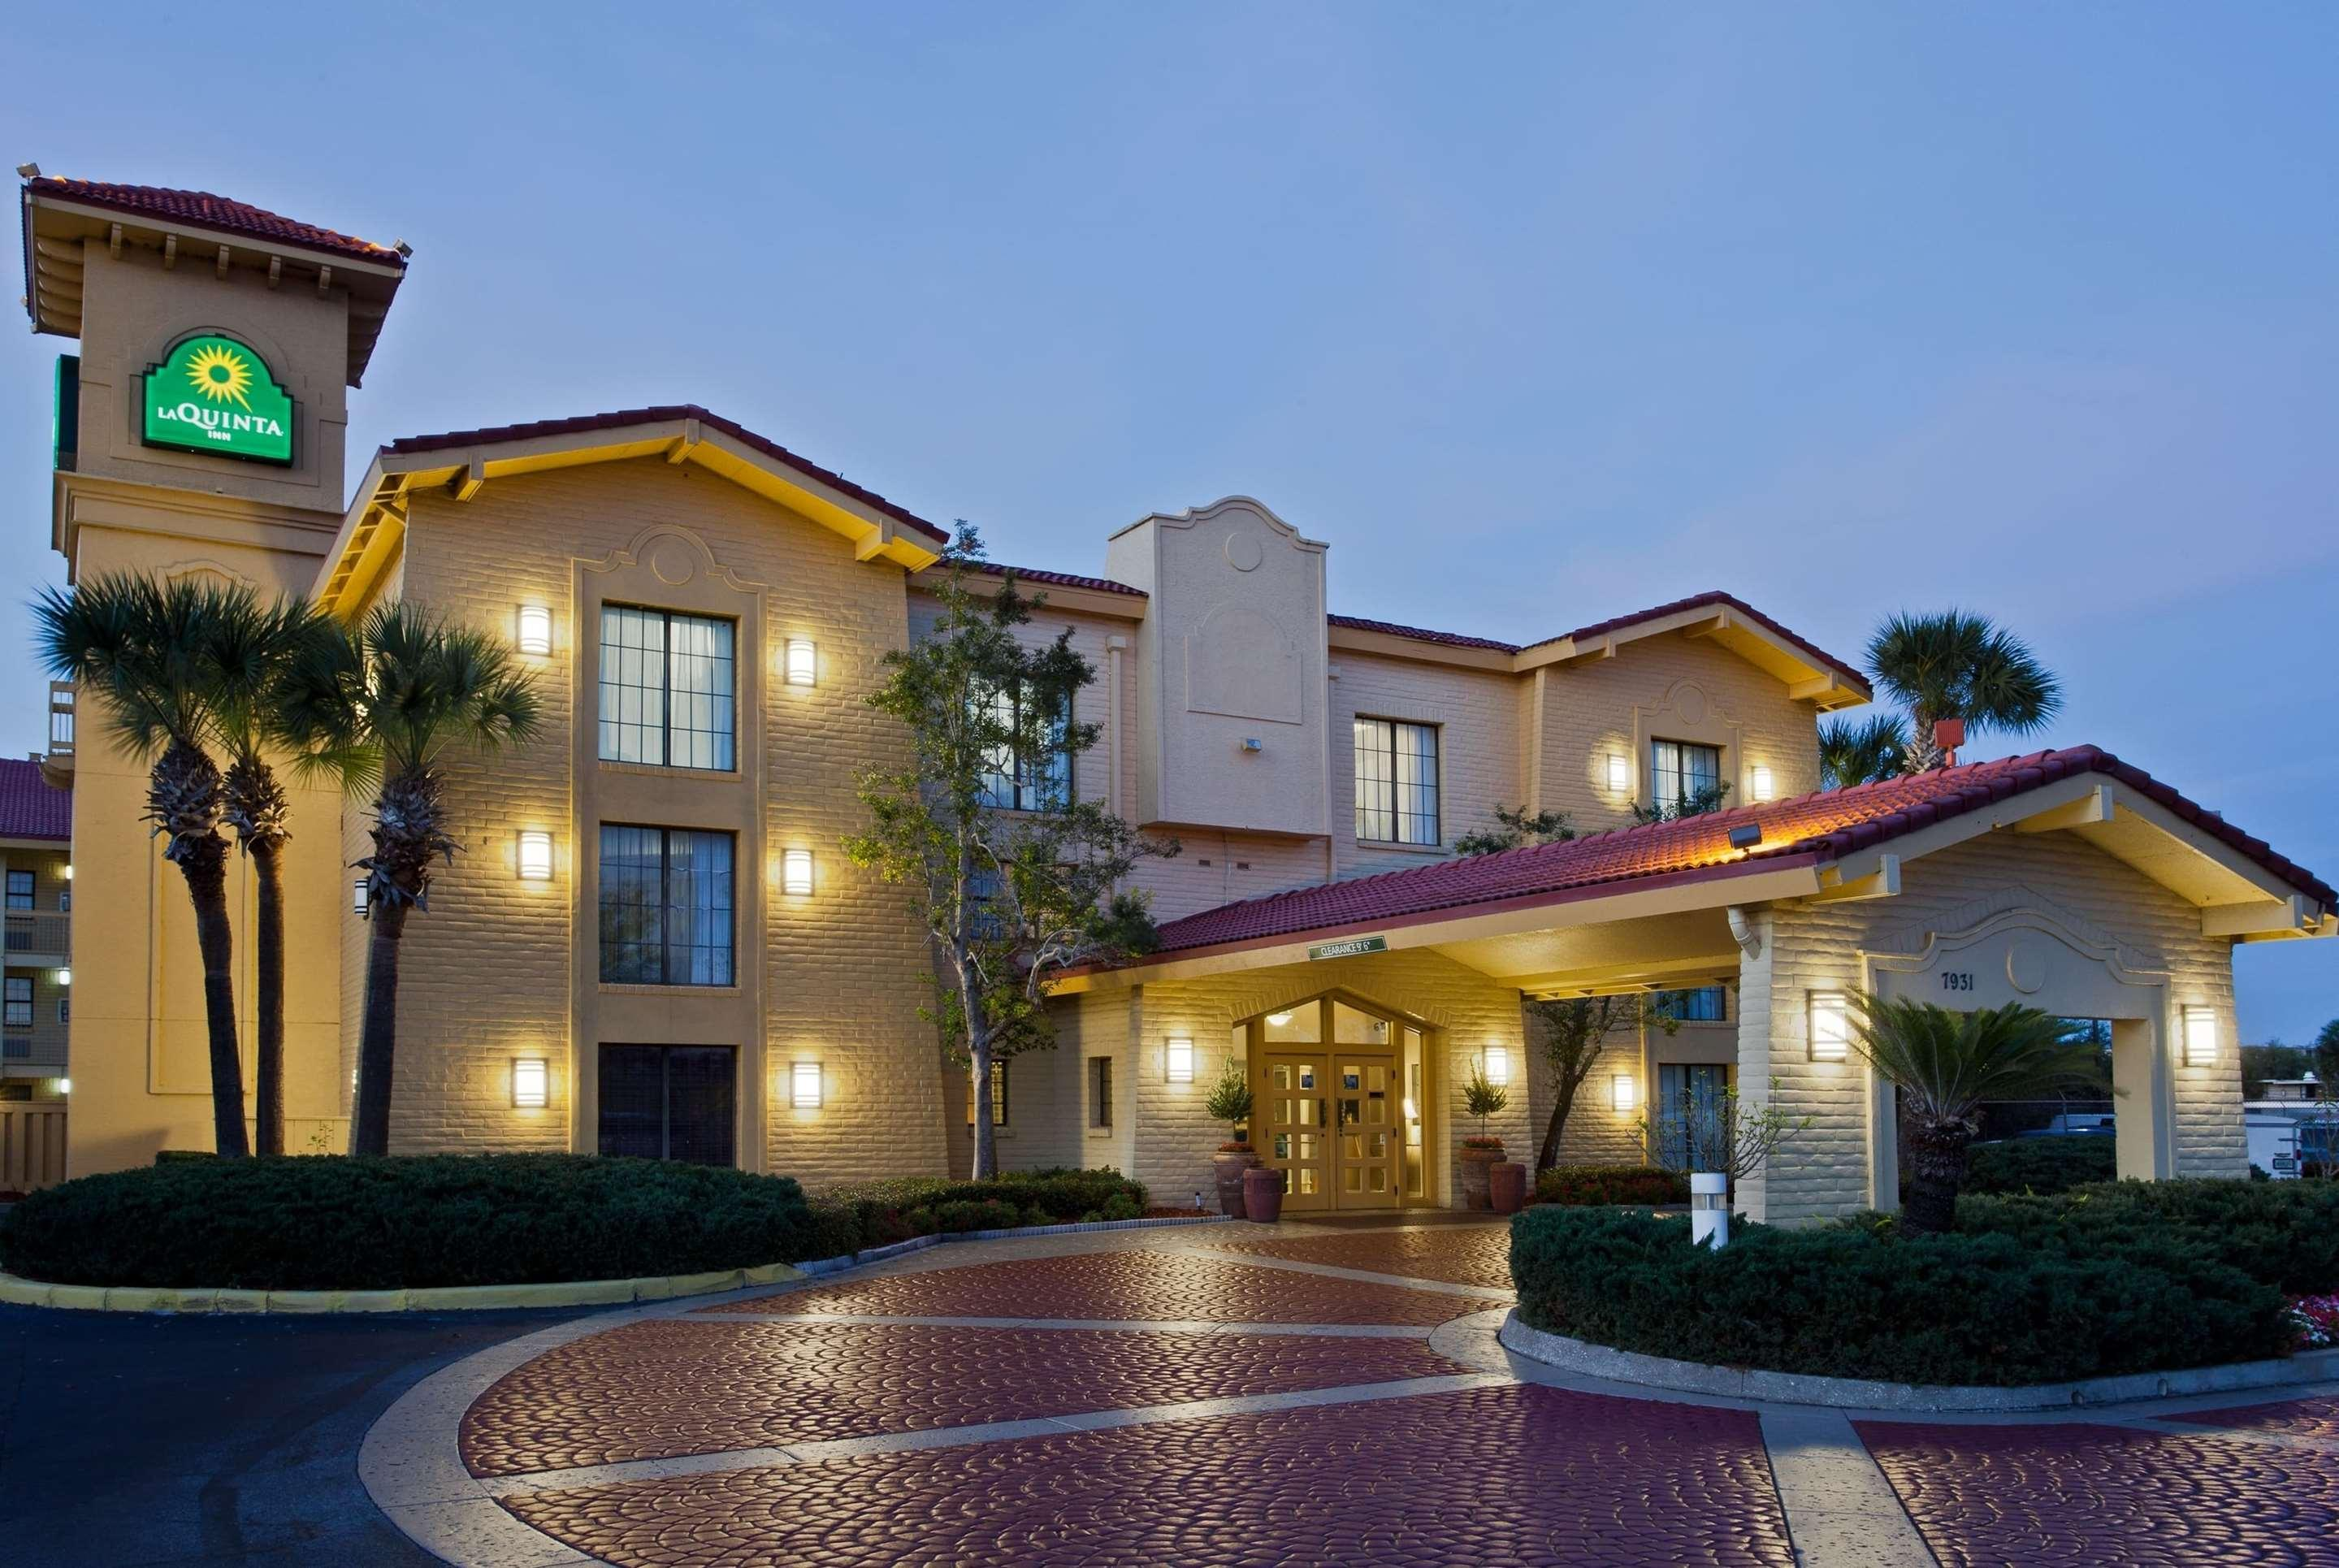 La Quinta Inn by Wyndham Orlando Airport West